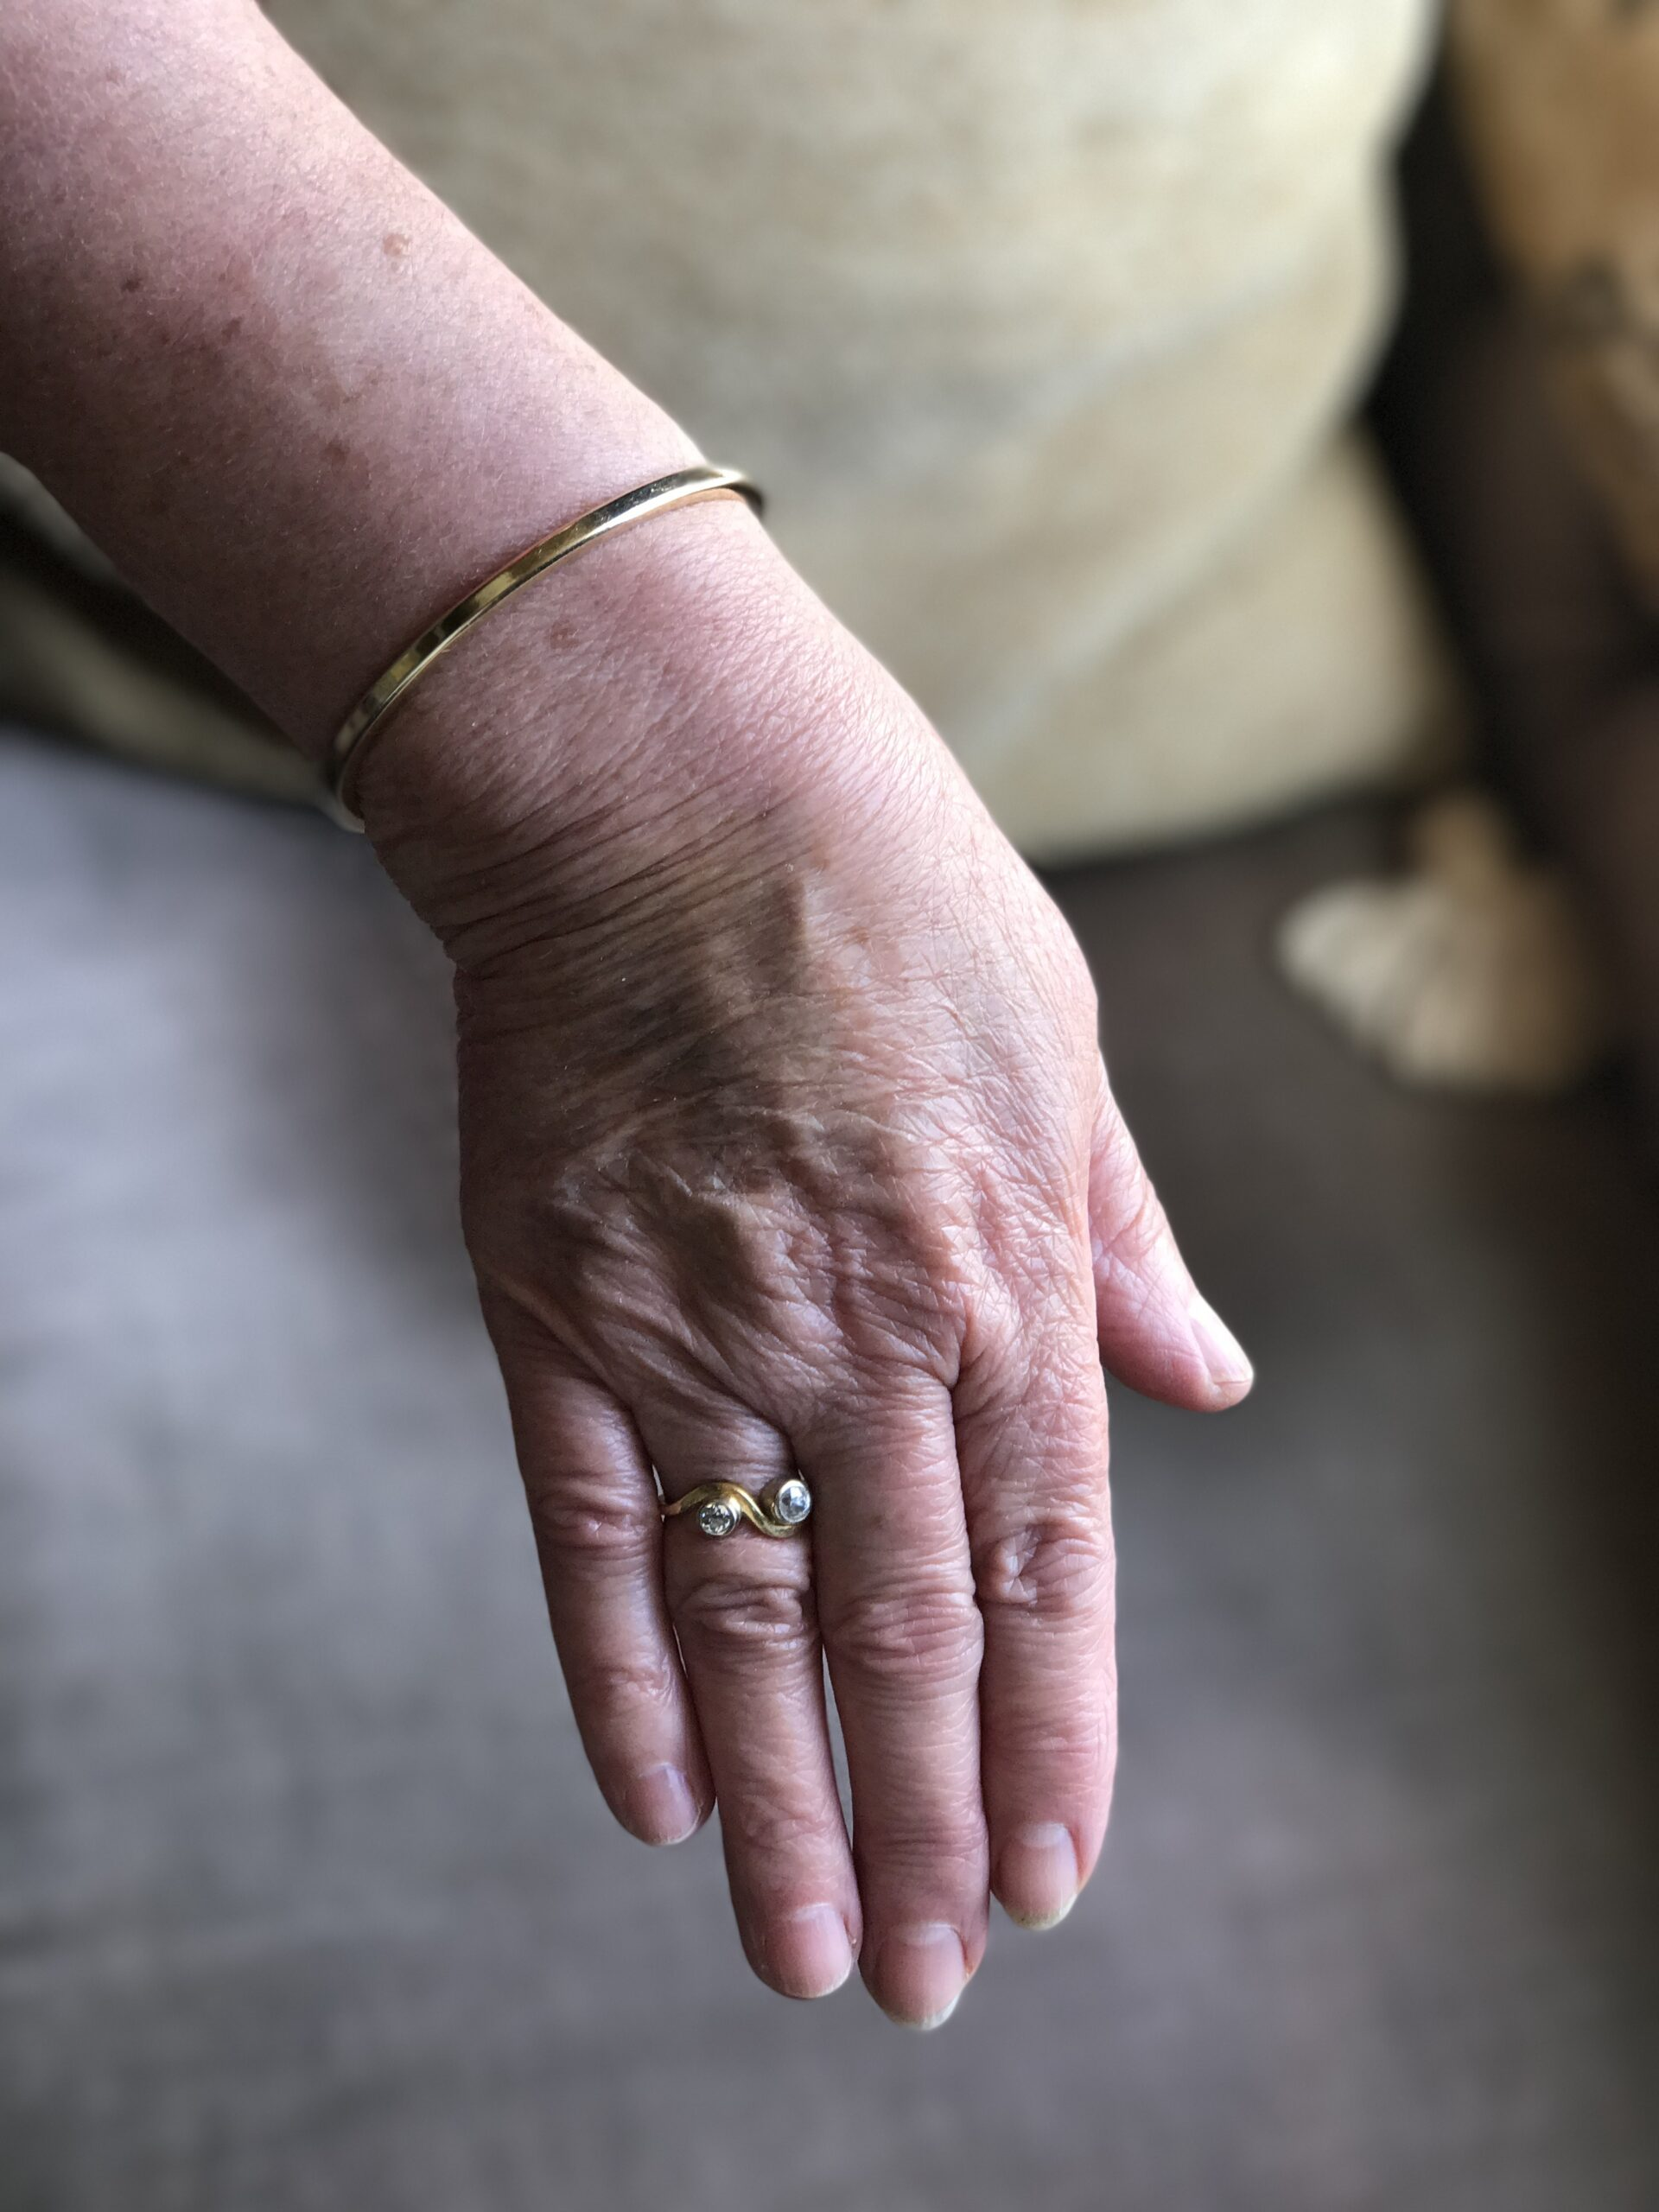 A mature white woman's right hand, back upwards with fingers straight out and closed, wearing a gold ring with two diamonds